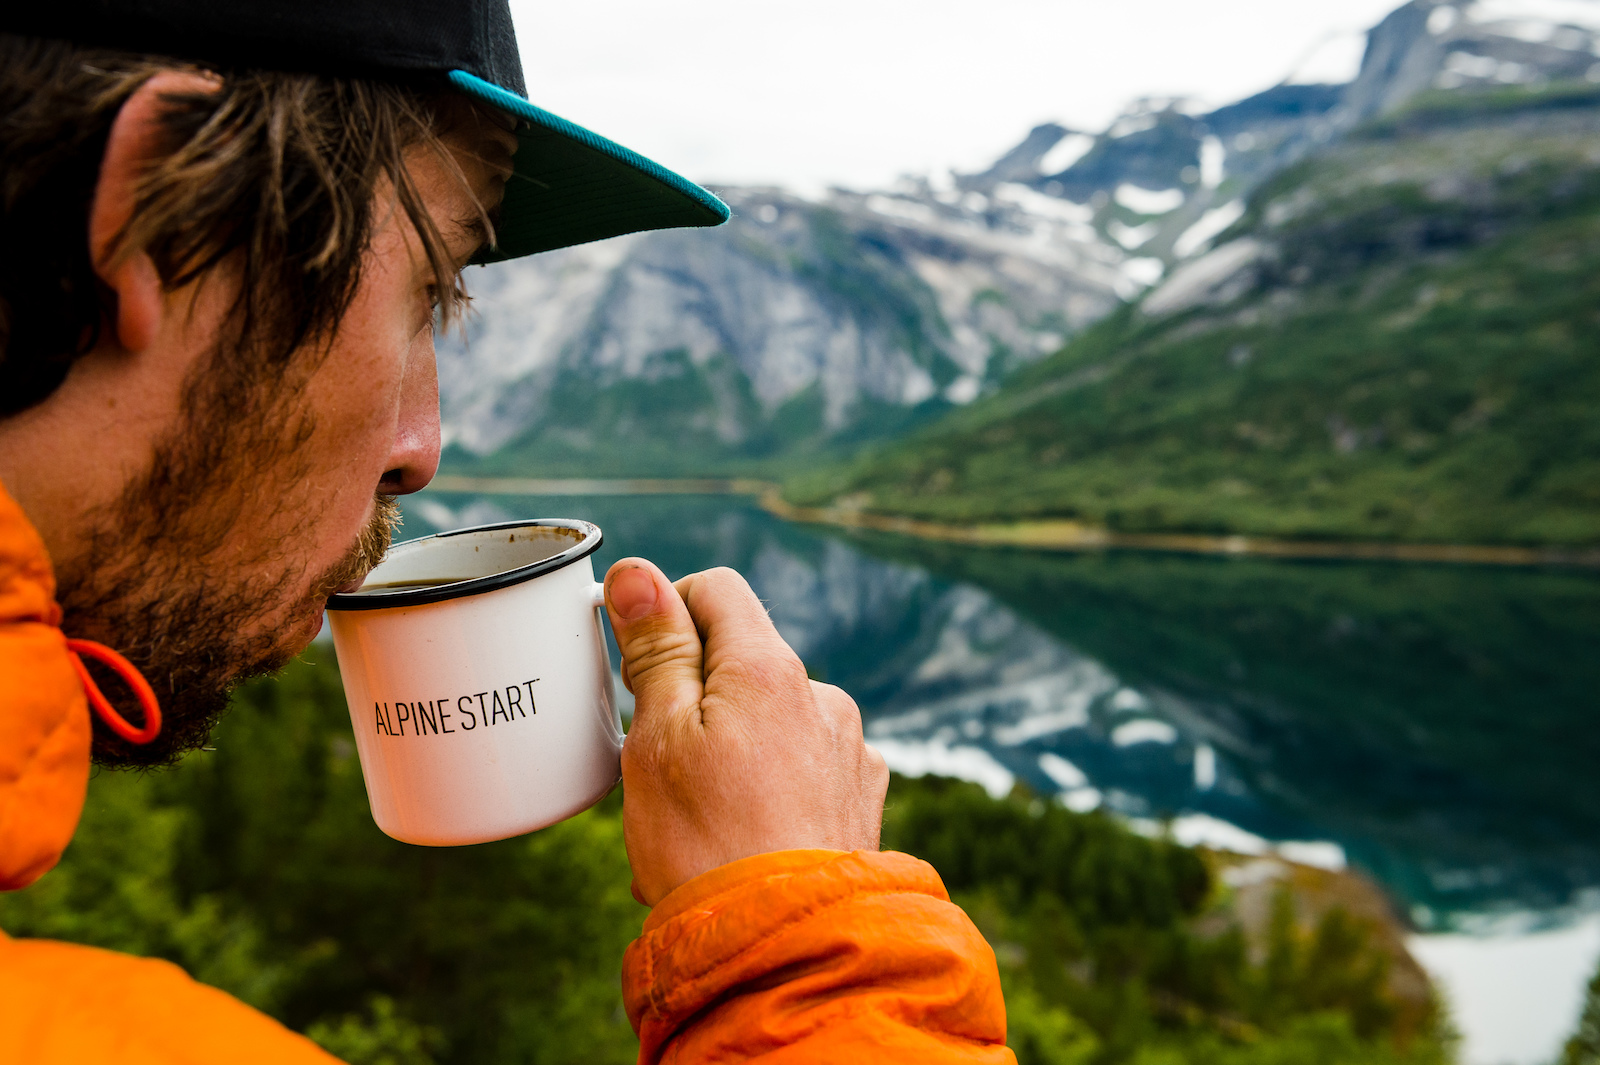 Joey Schulser drinking his morning coffee in Reinneset Norway.